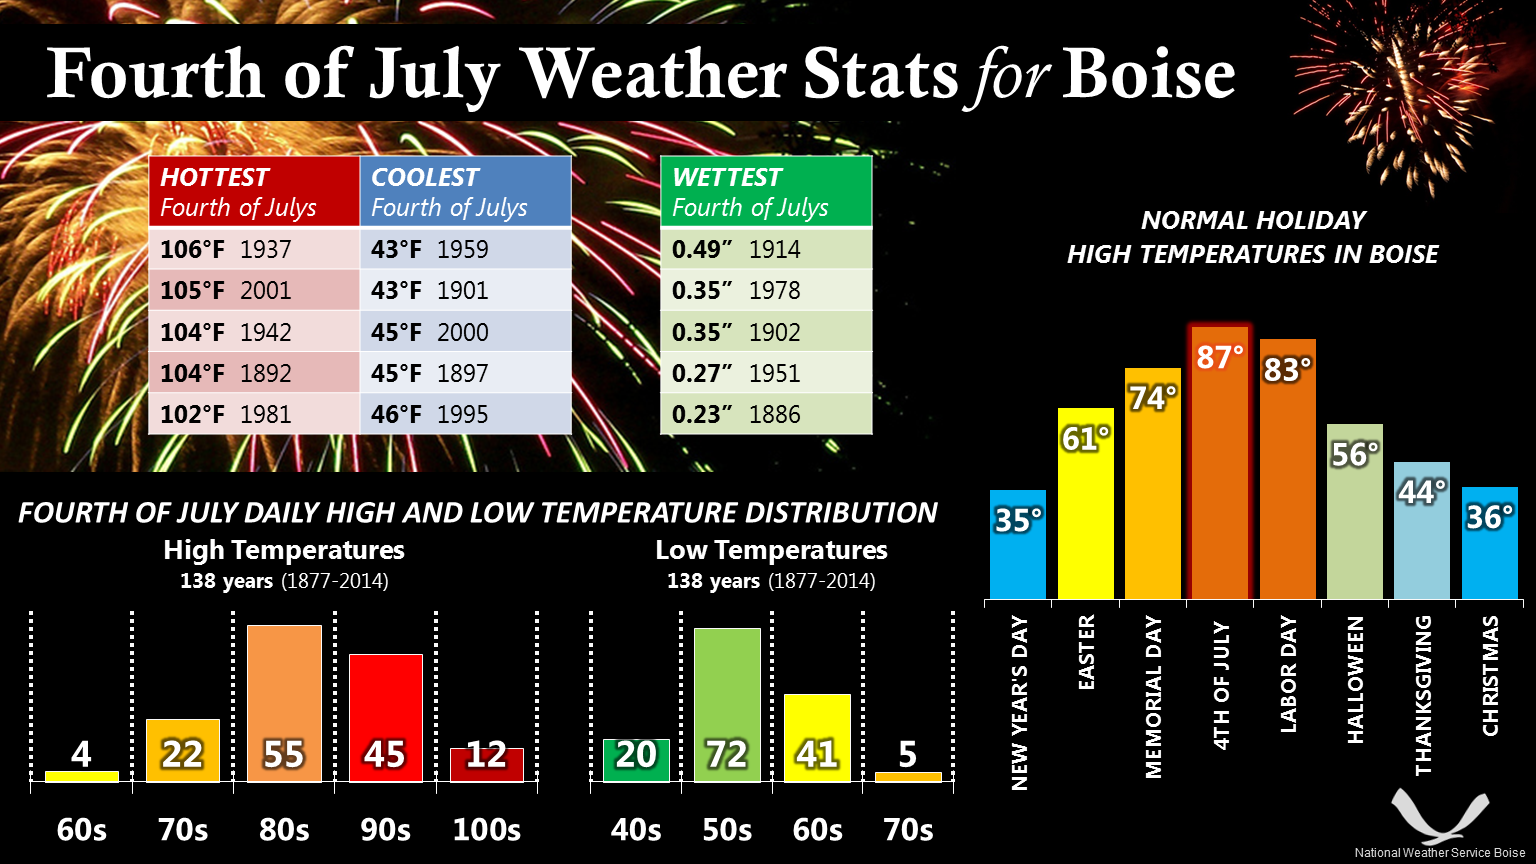 Boise 4th of July Climate Statistics